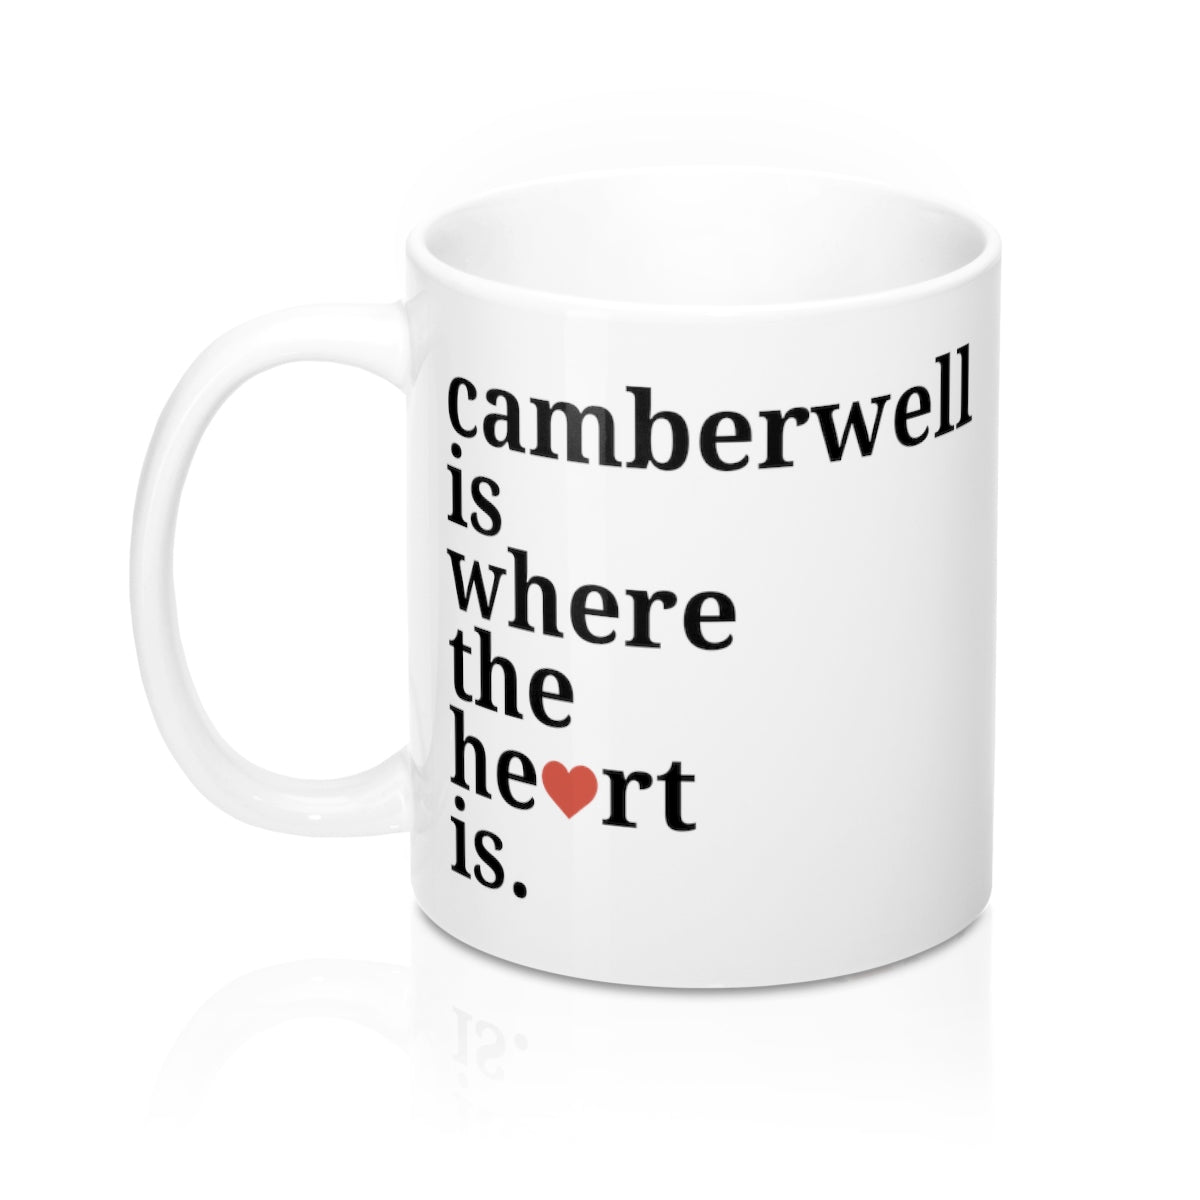 Camberwell Is Where The Heart Is Mug